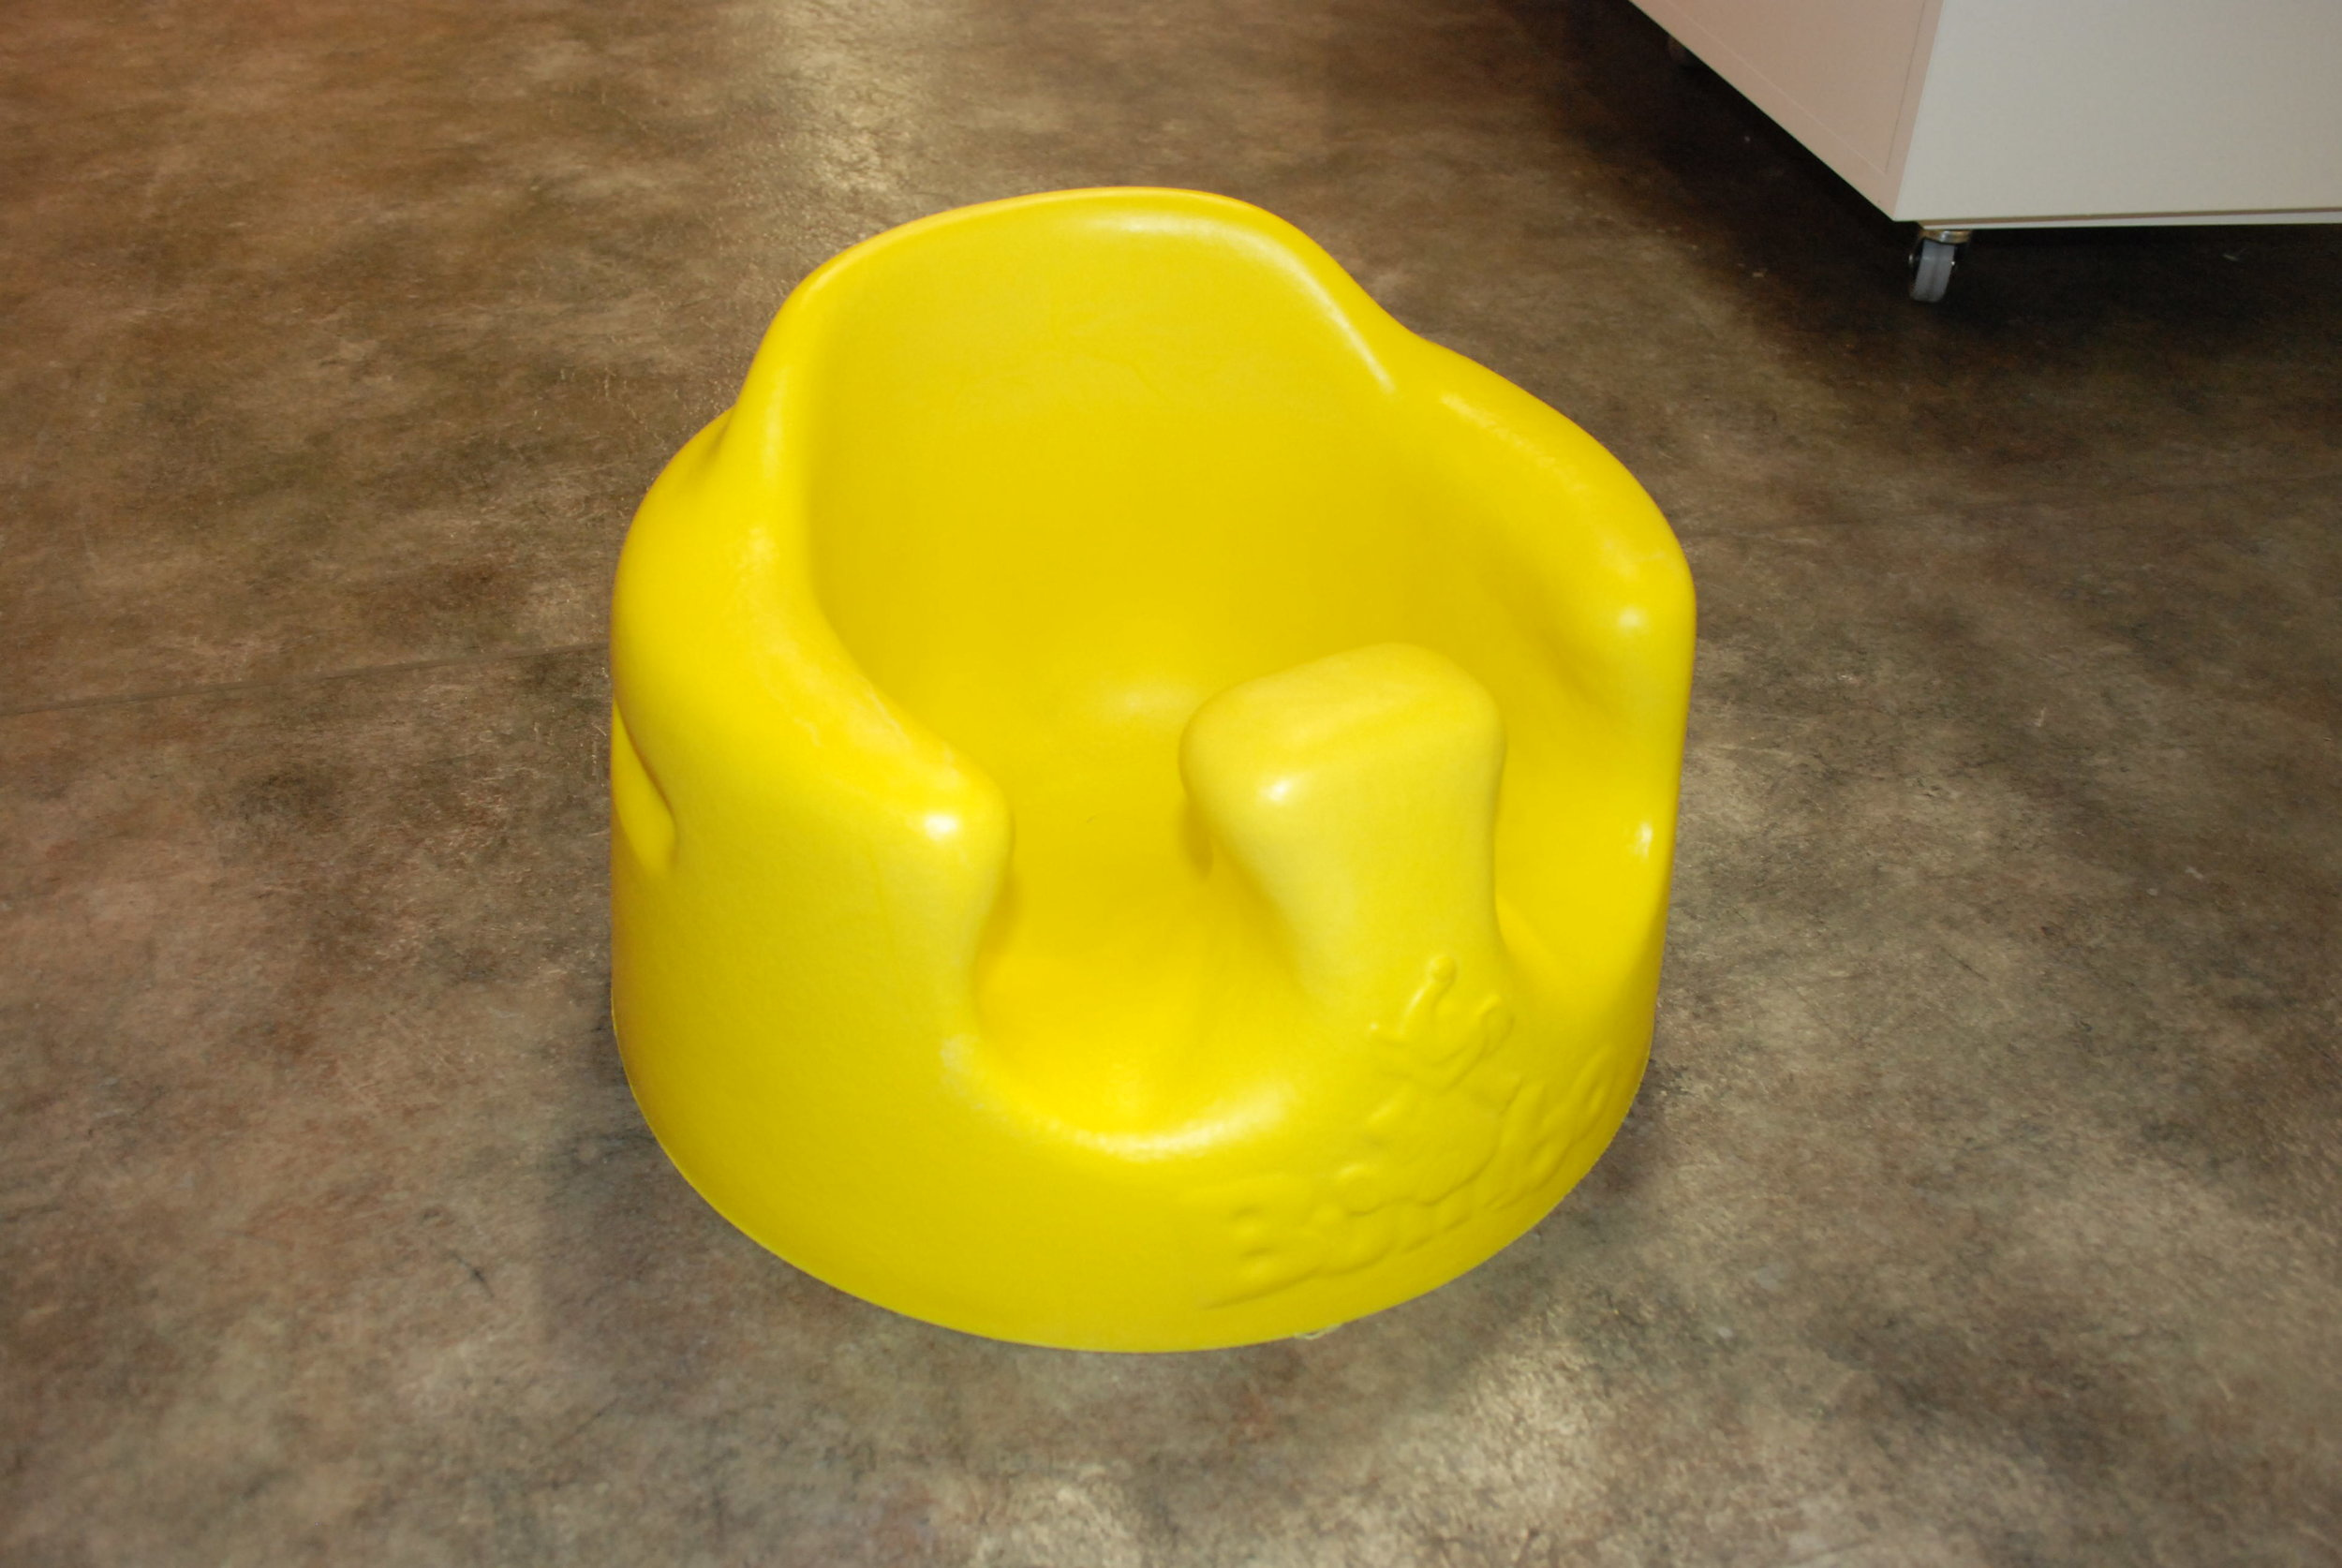 Bumbo seats create a week spine